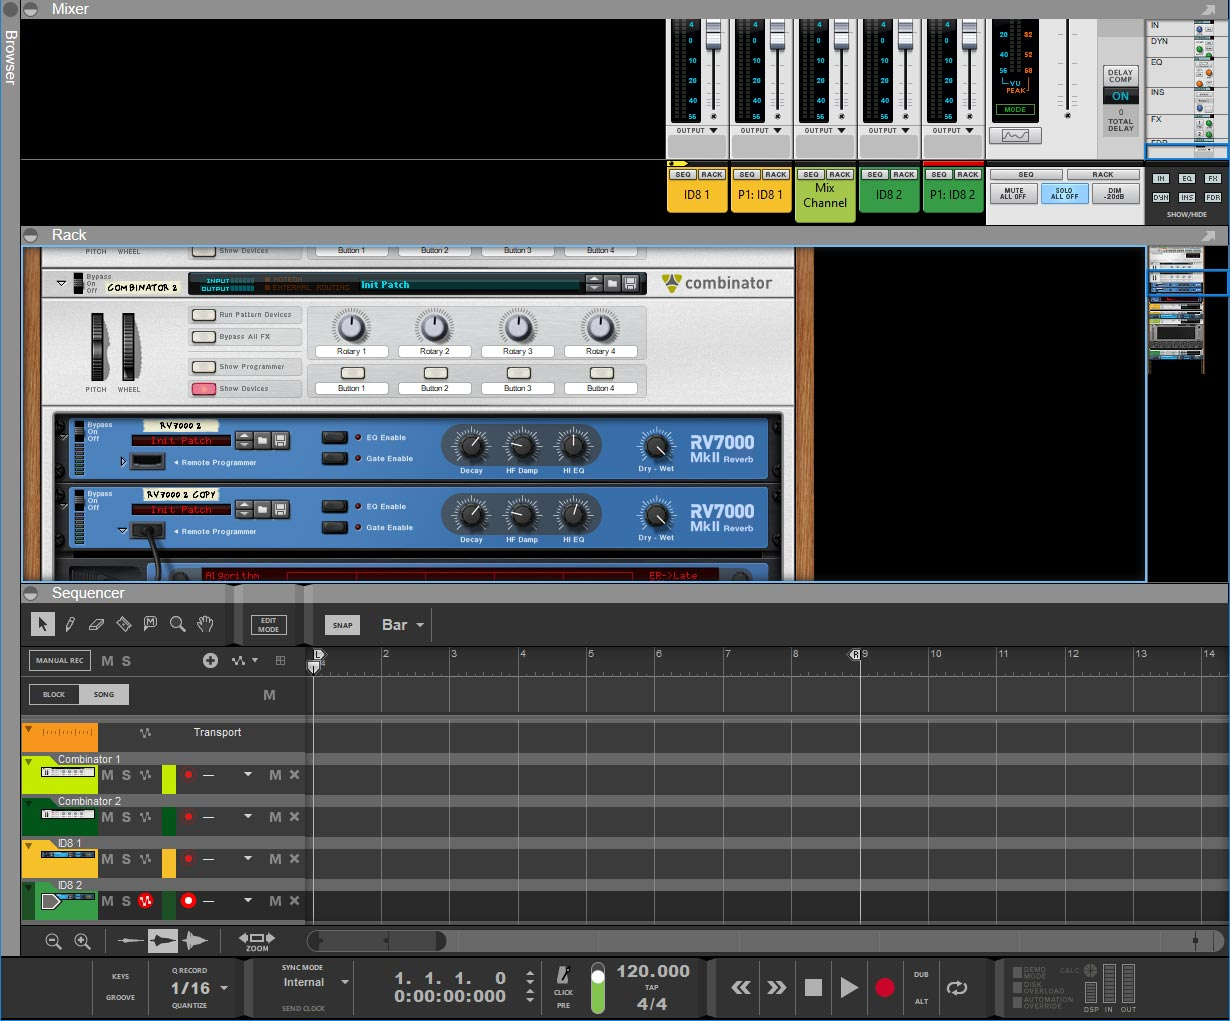 Reason tutorials | Make music and learn using Propellerhead